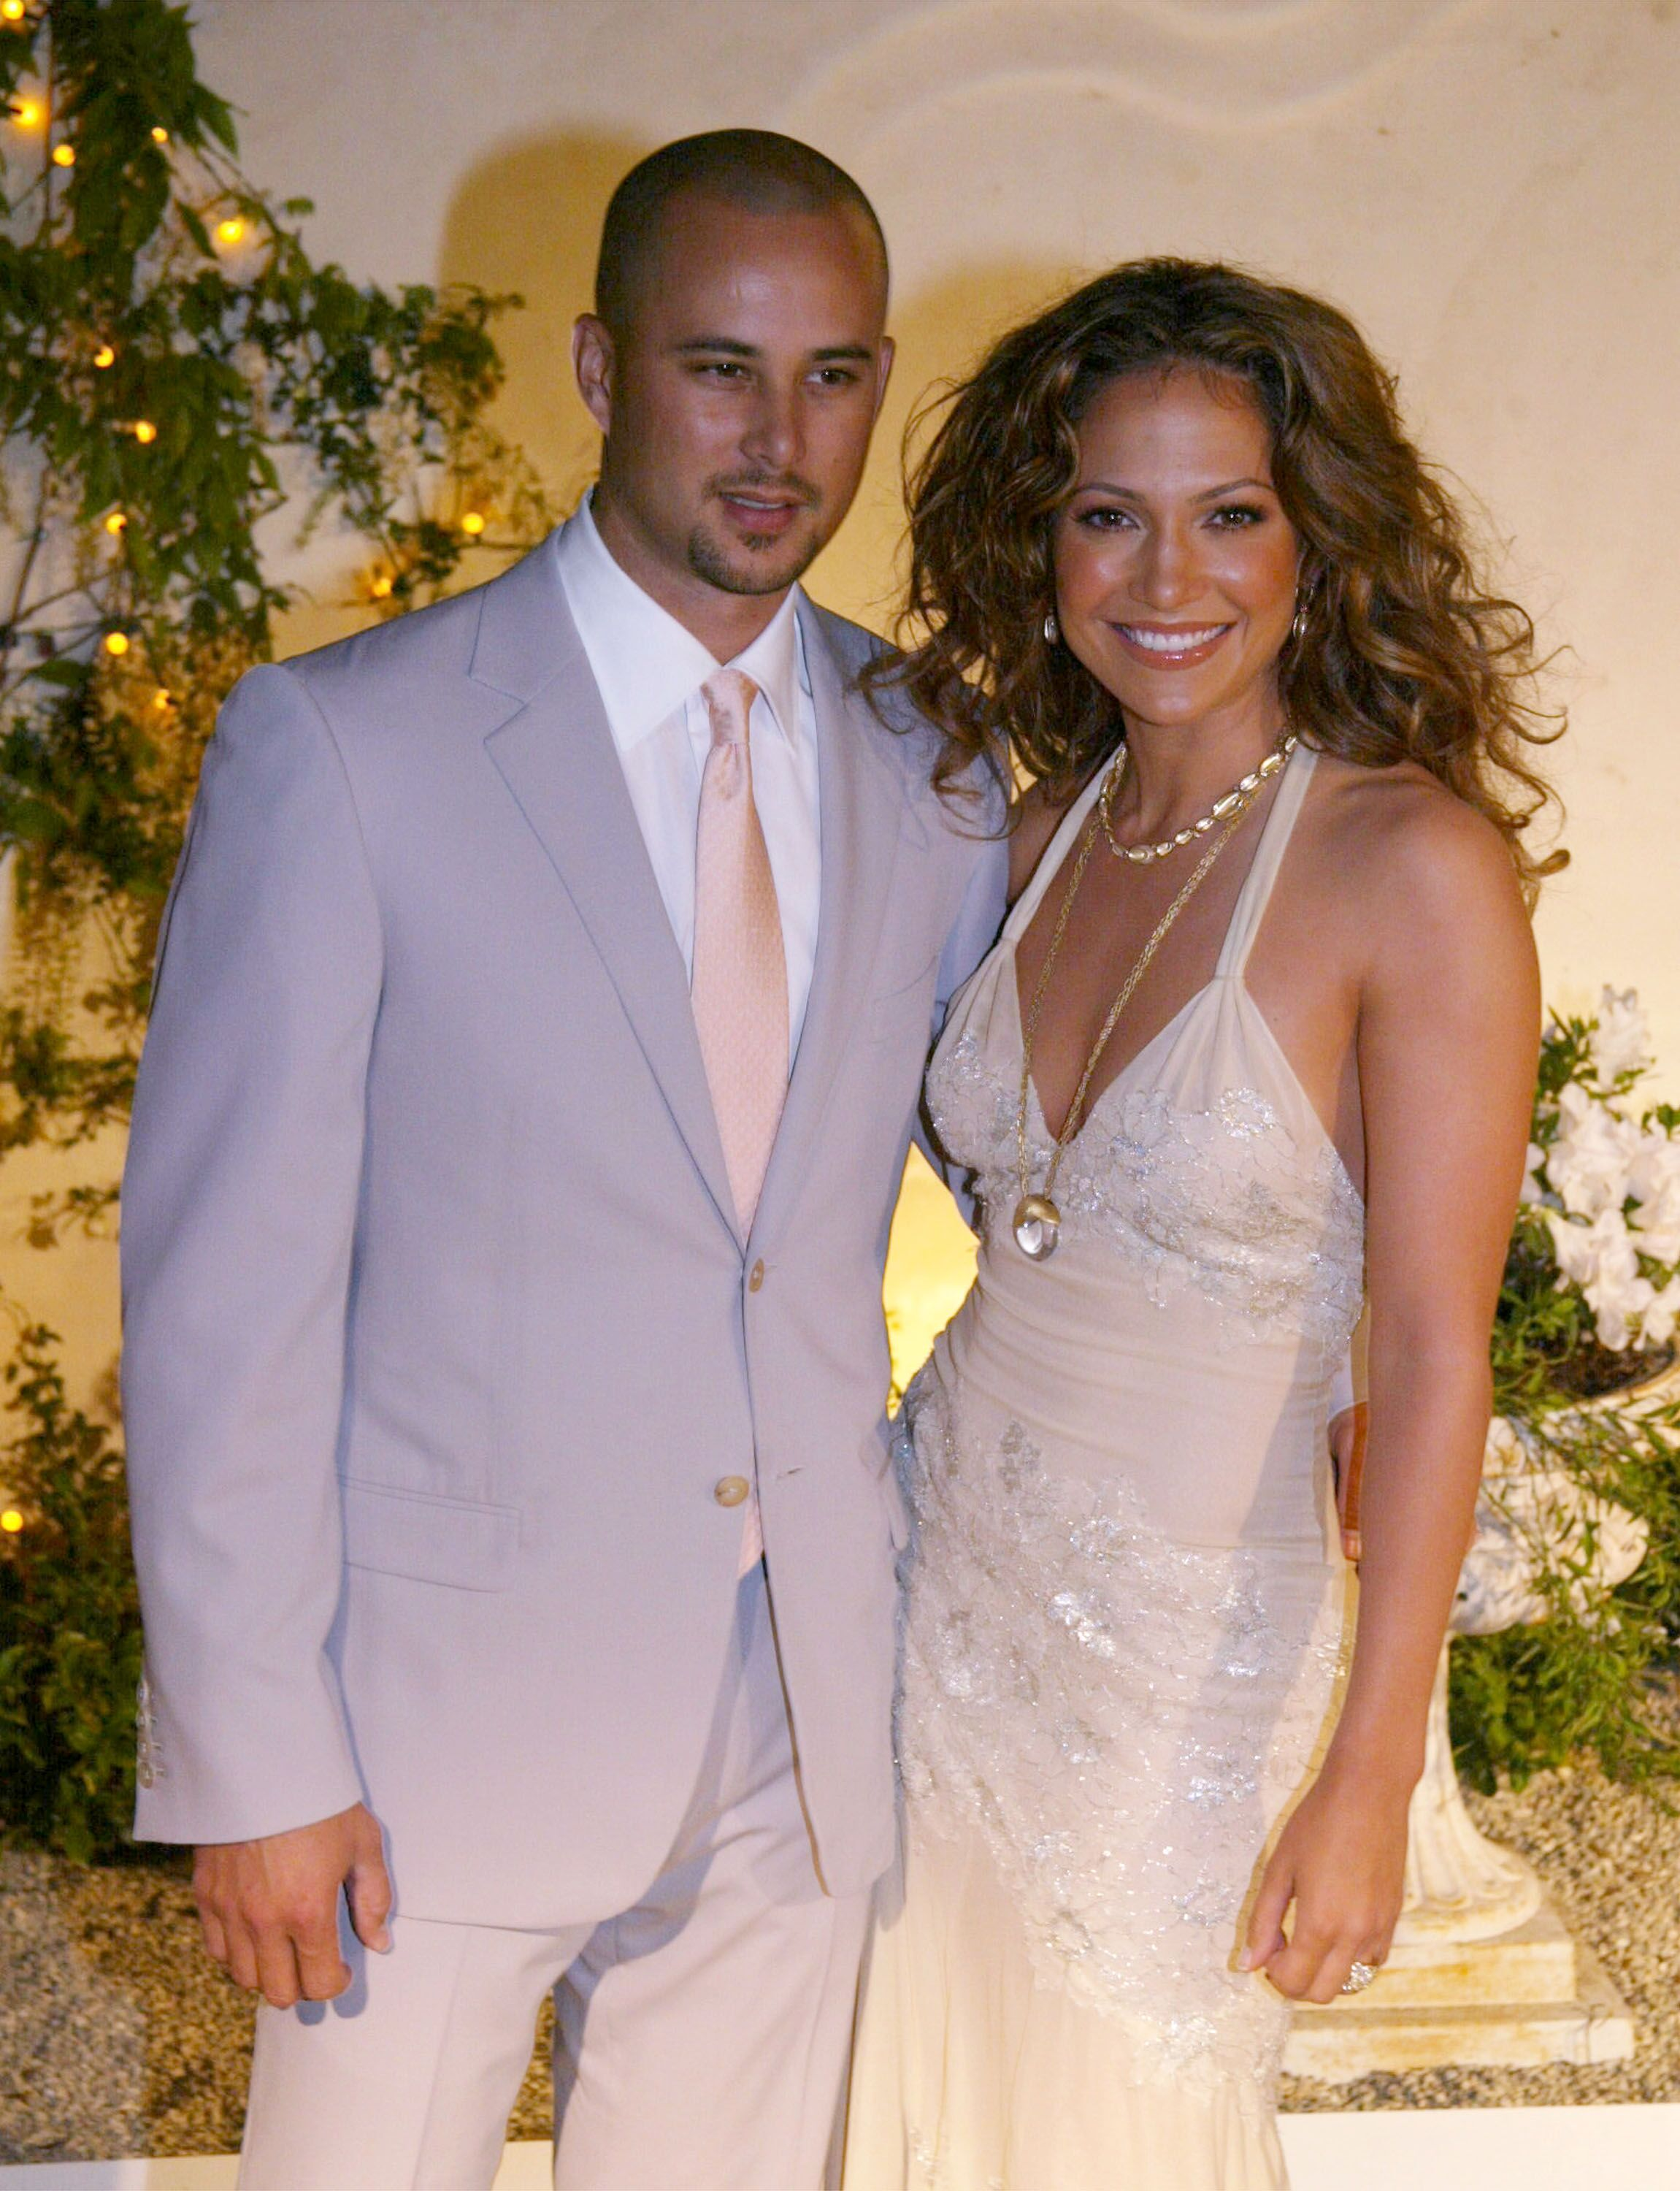 Jennifer Lopez and her husband Cris Judd at the grand opening of her new restaurant, Madres April 12, 2002, in Pasadena, CA   Photo: Frazer Harrison/Getty Images